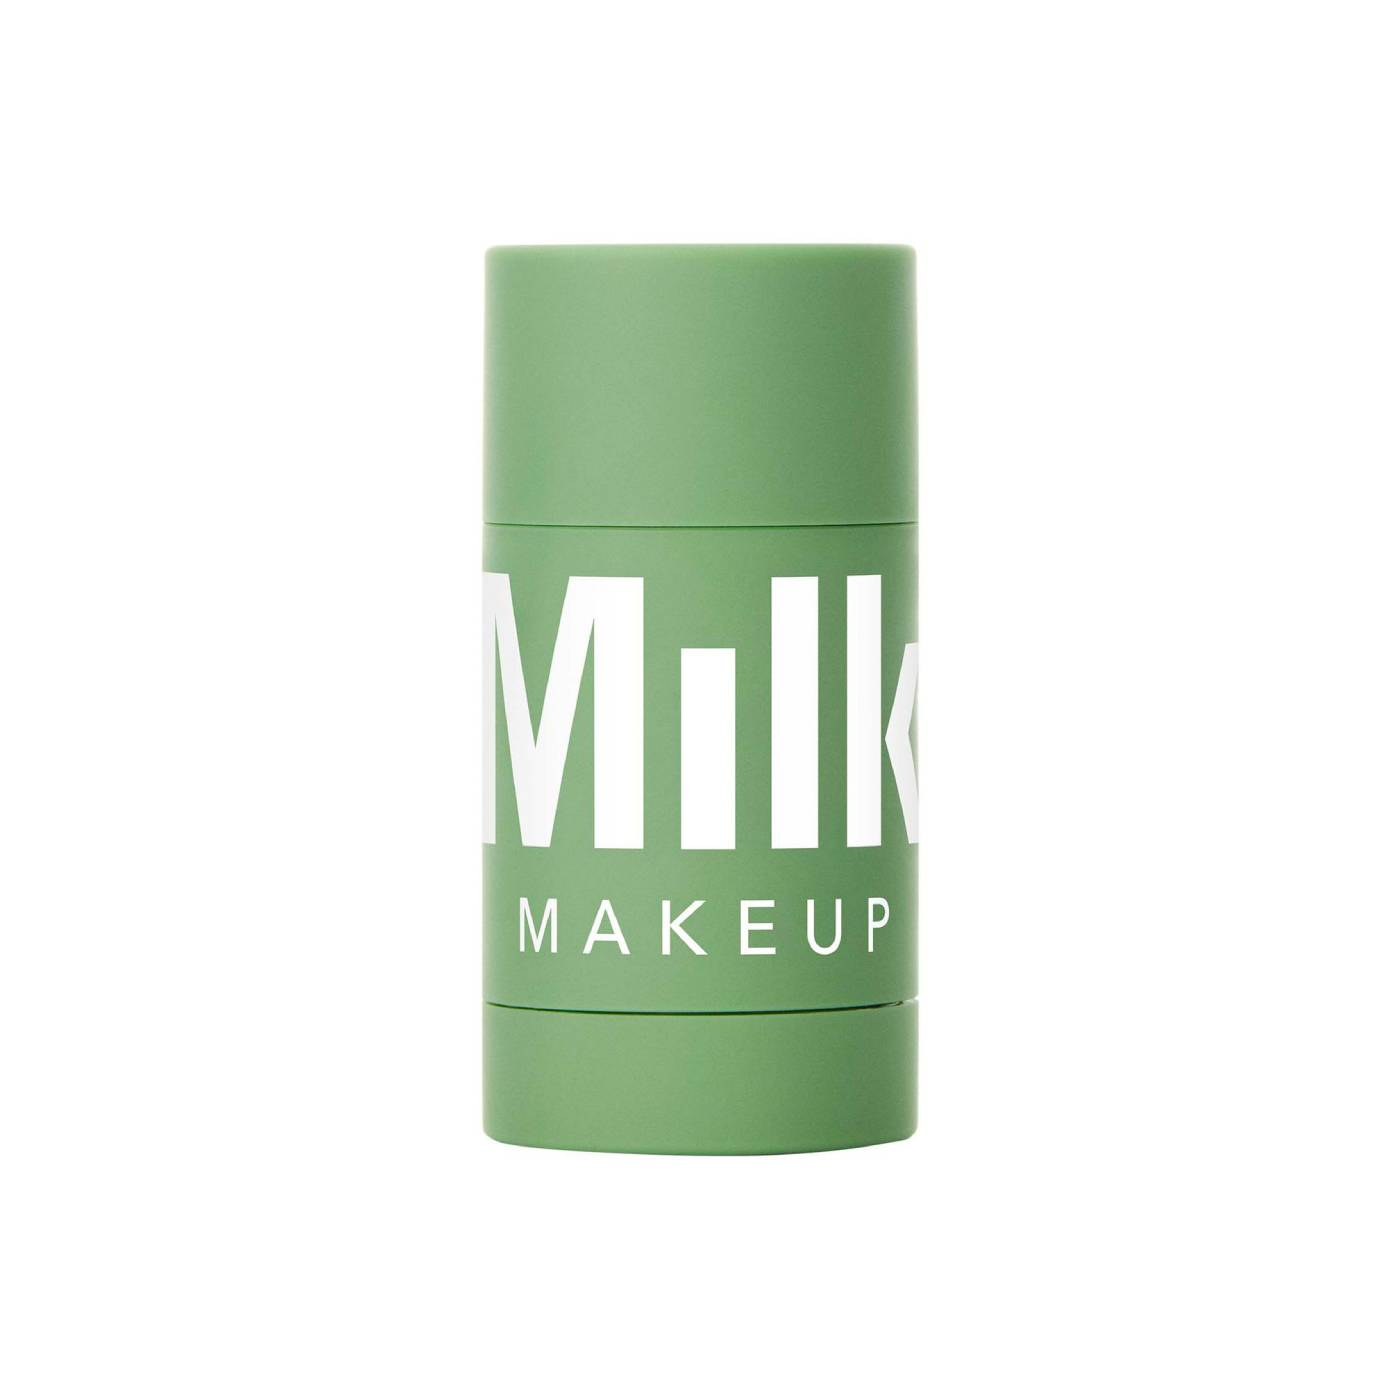 MILK Cannabis Hydrating Face Mask, £21 - You can really stick it to your skin with this solid stick-applicator cannabis face mask by MILK. It is super hydrating thanks to the plant-tastic oil and thanks to power player ingredient glycerin, it sucks moisture to your skin from your surroundings and forms a barrier to keep nasties out. You simply swipe on, leave for 5-10 minutes and wash. Plus, you look like the Incredible Hulk for a while, which is always fun! Swipe one up here.